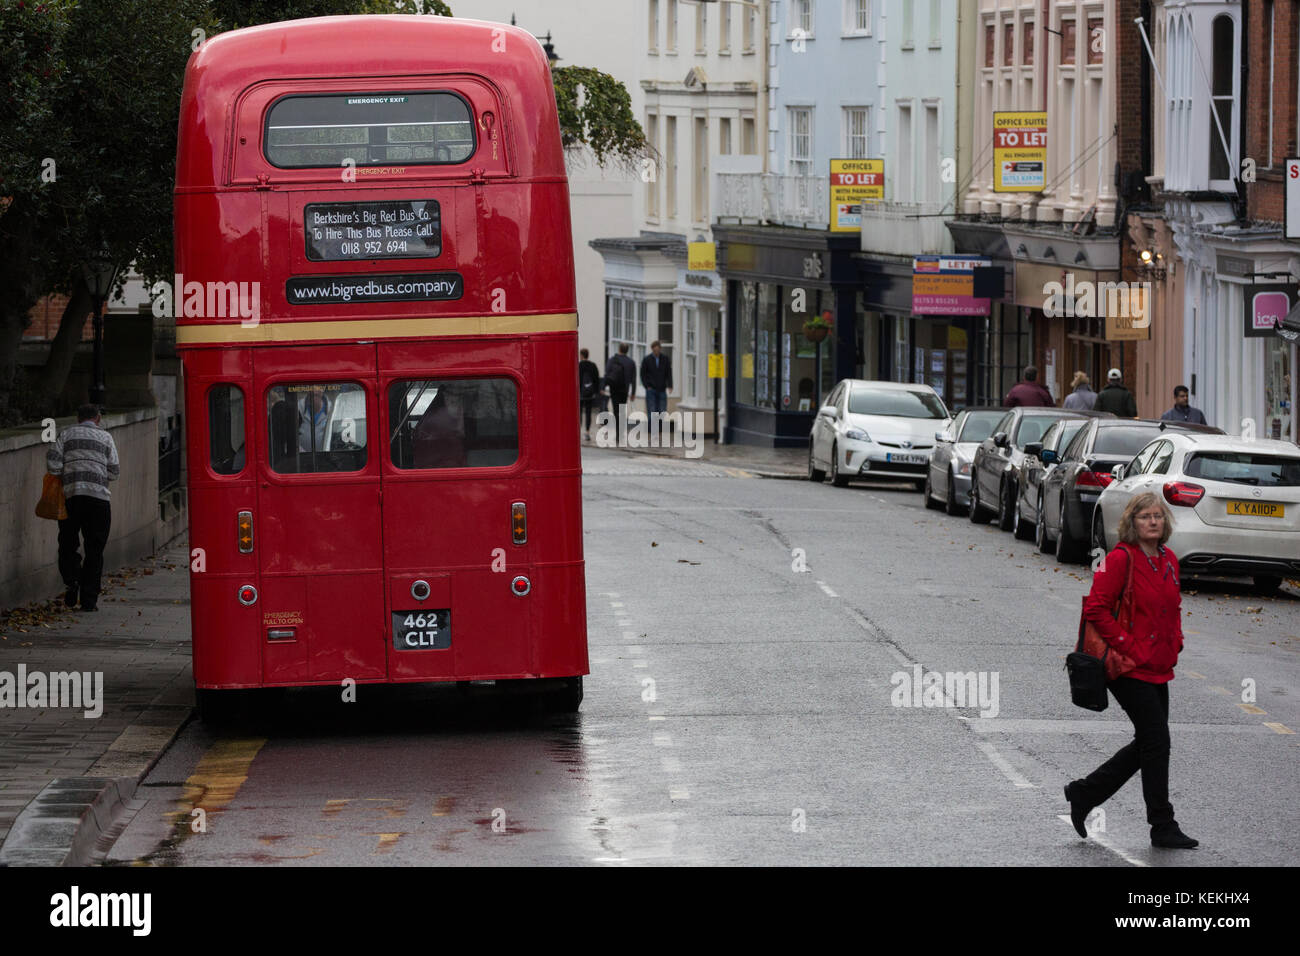 Windsor, UK. 21st October, 2017. An old double-decker bus in Windsor High Street. - Stock Image